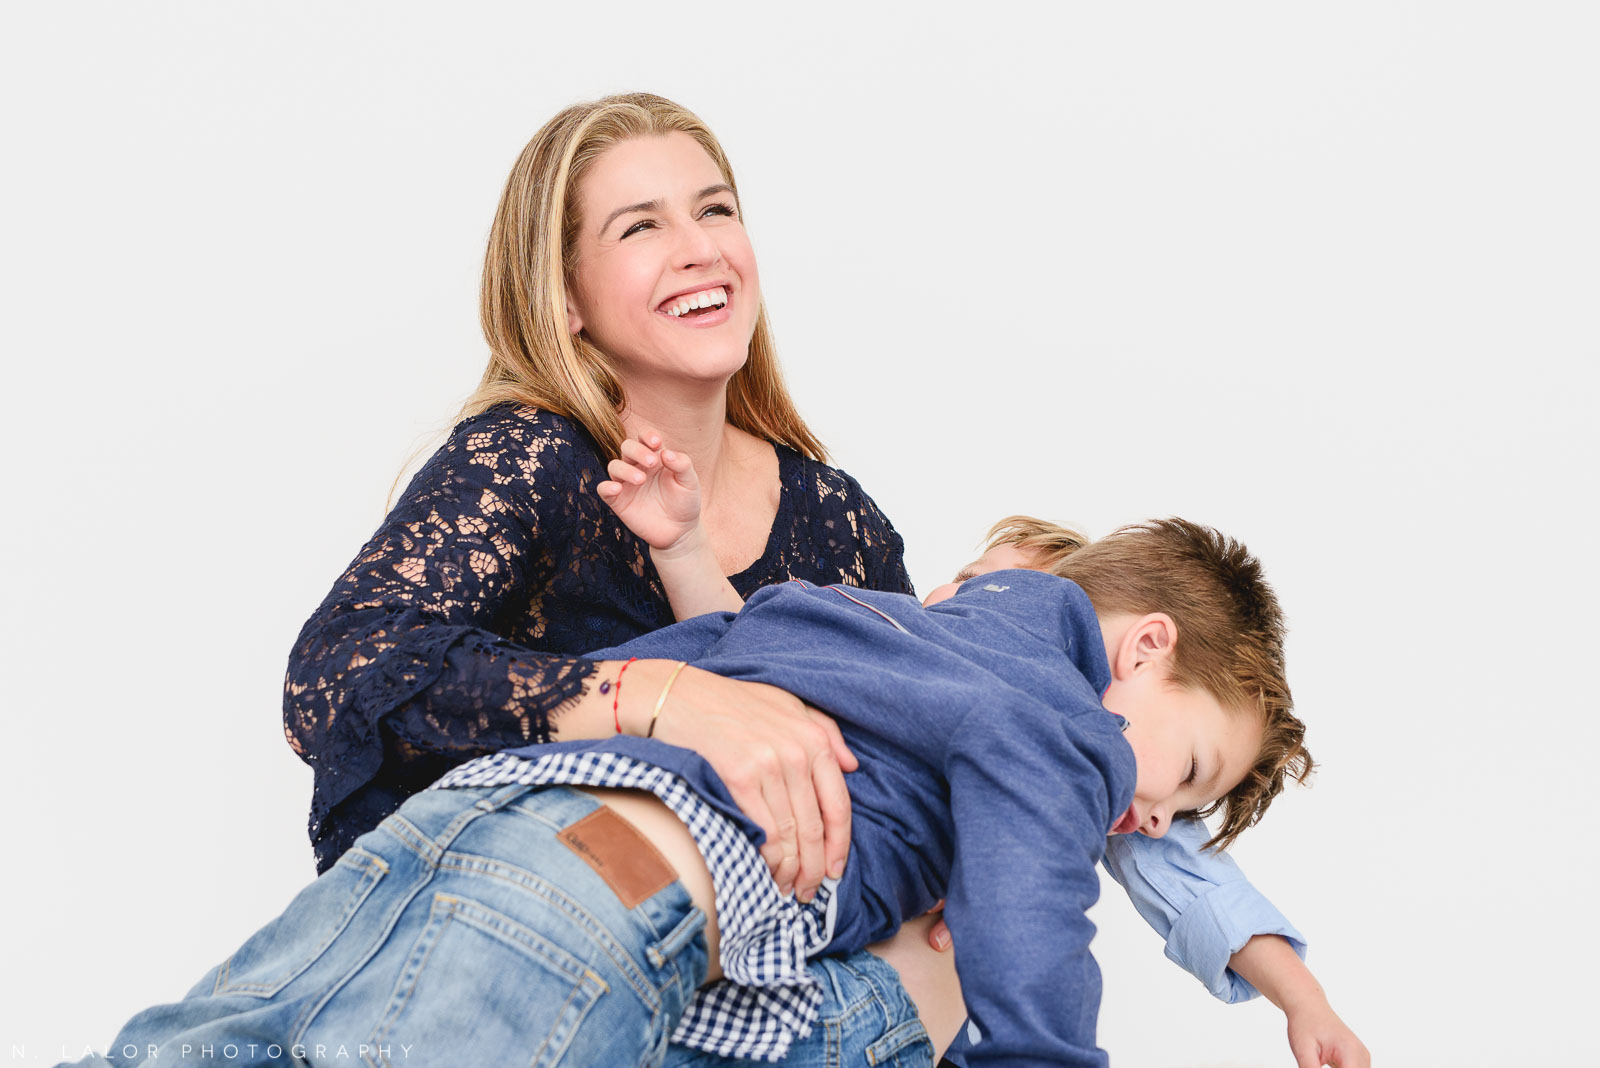 Mom with two crazy boys. Studio photo session with N. Lalor Photography. Greenwich, Connecticut.